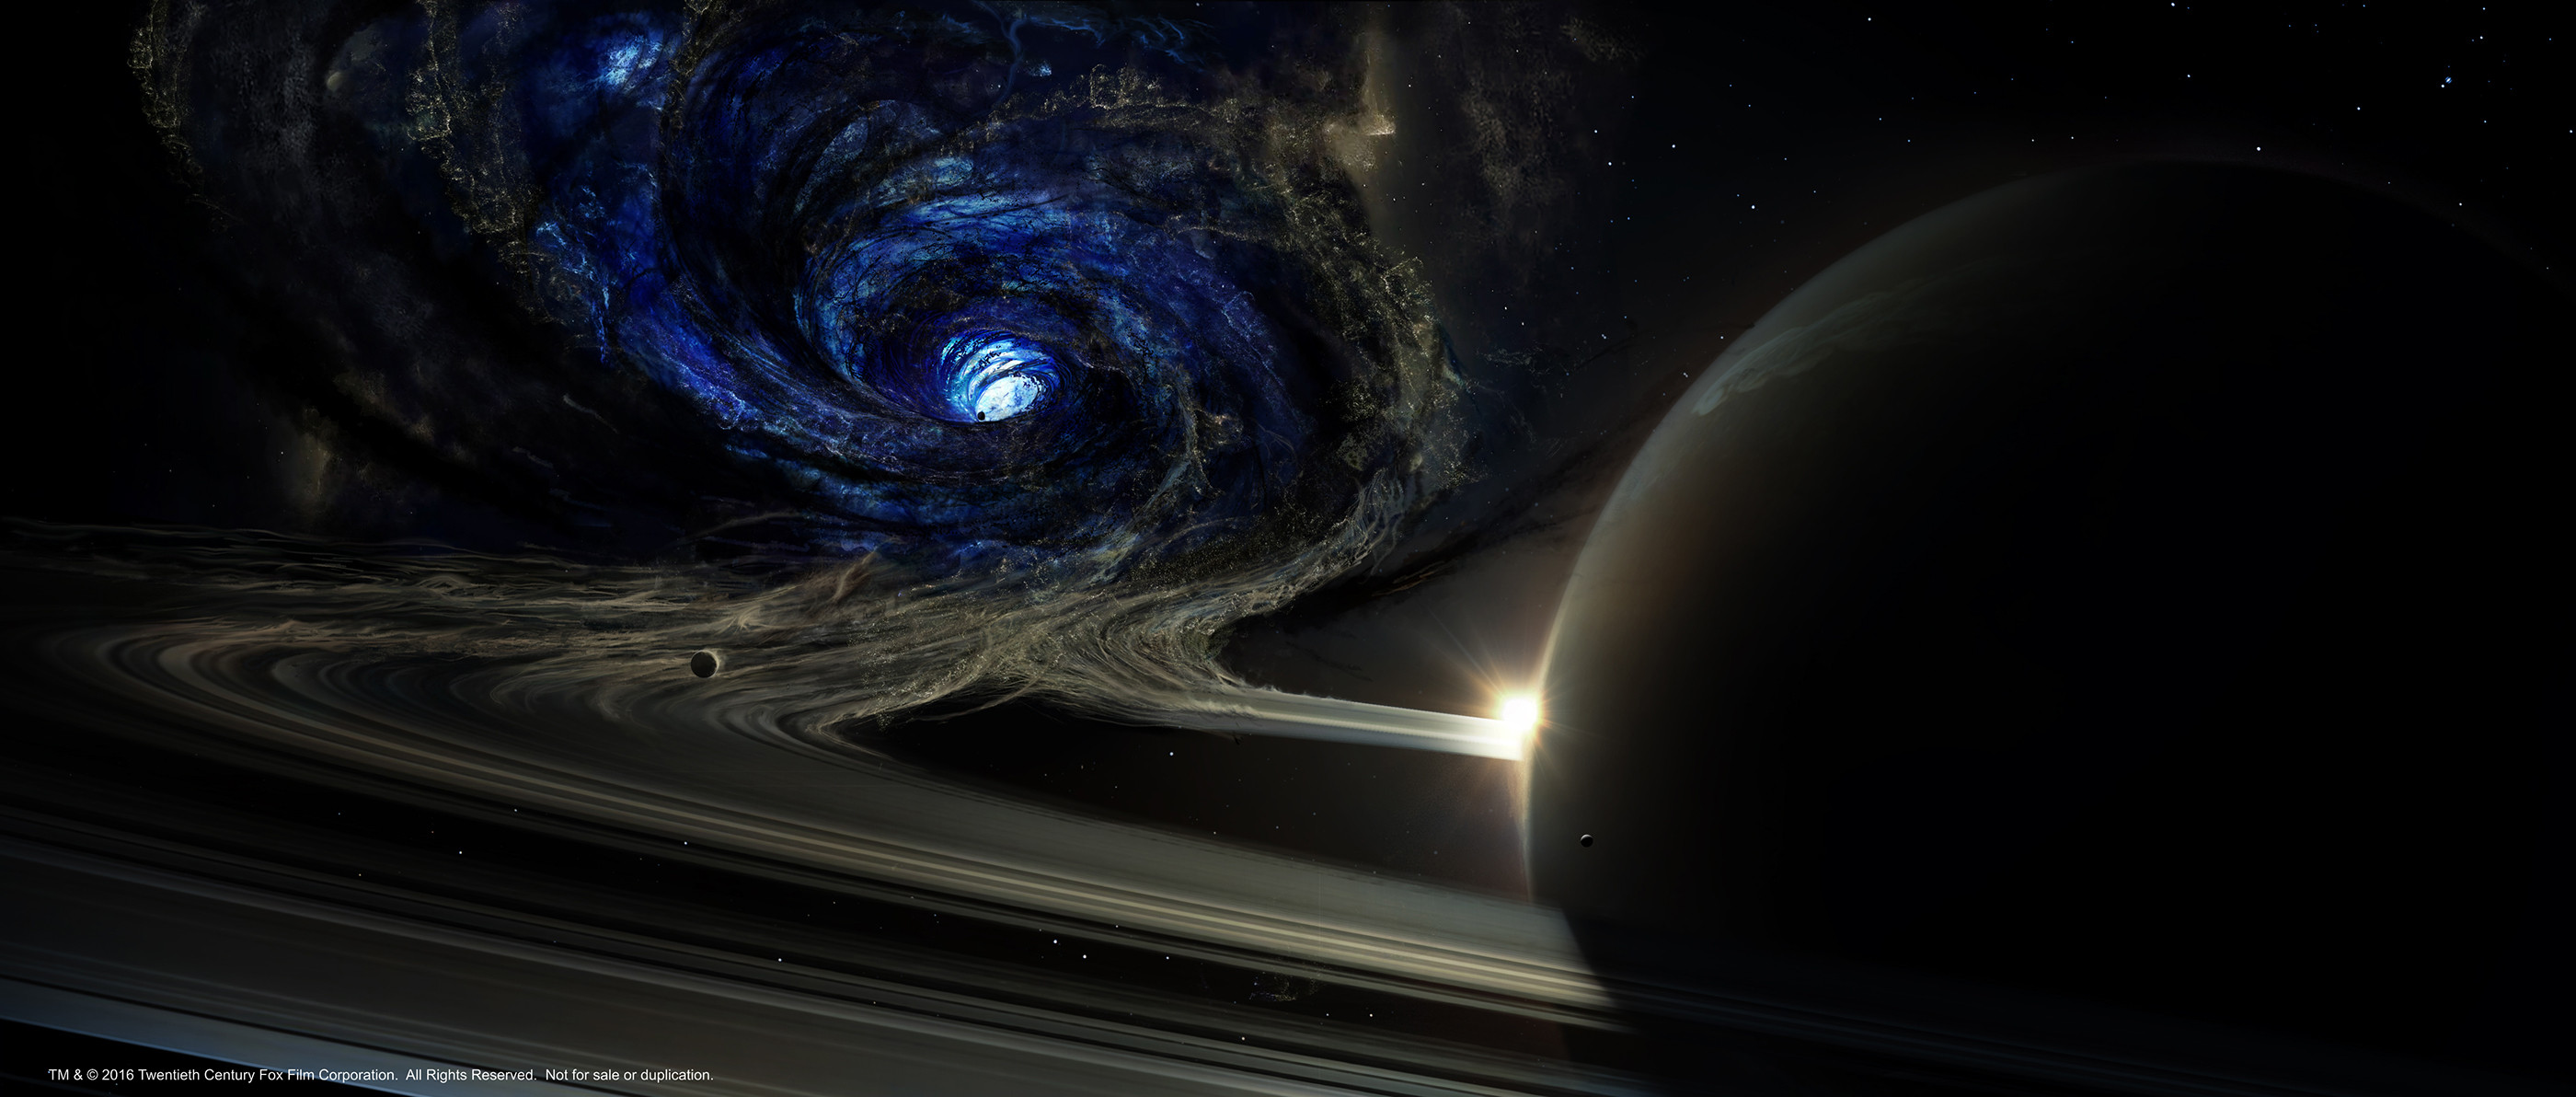 Wormhole, phase 1 Collaboration with concept artist Luis Guggenberger.